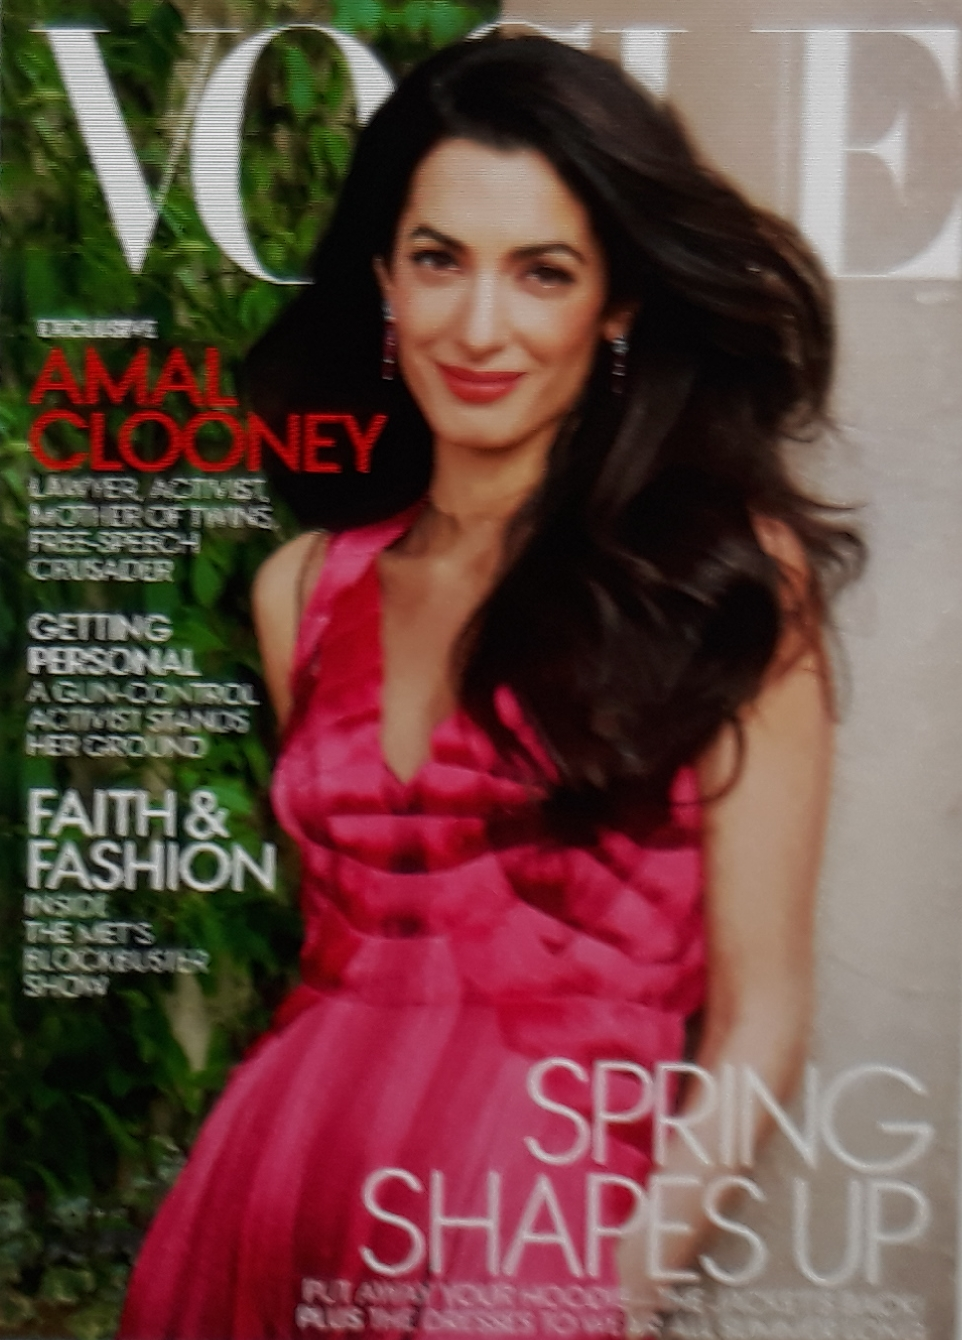 VOGUE NEWS&TRENDS. WORLD Proceedings NEWS. VOGUE USA, New York COVER April2018.        AMAL GLOONEY…FASHION, BEAUTY&LIFESTYLE, Family&Inside Cover…19.4.2018 Favourite. HXSTYLE.net HEINIS